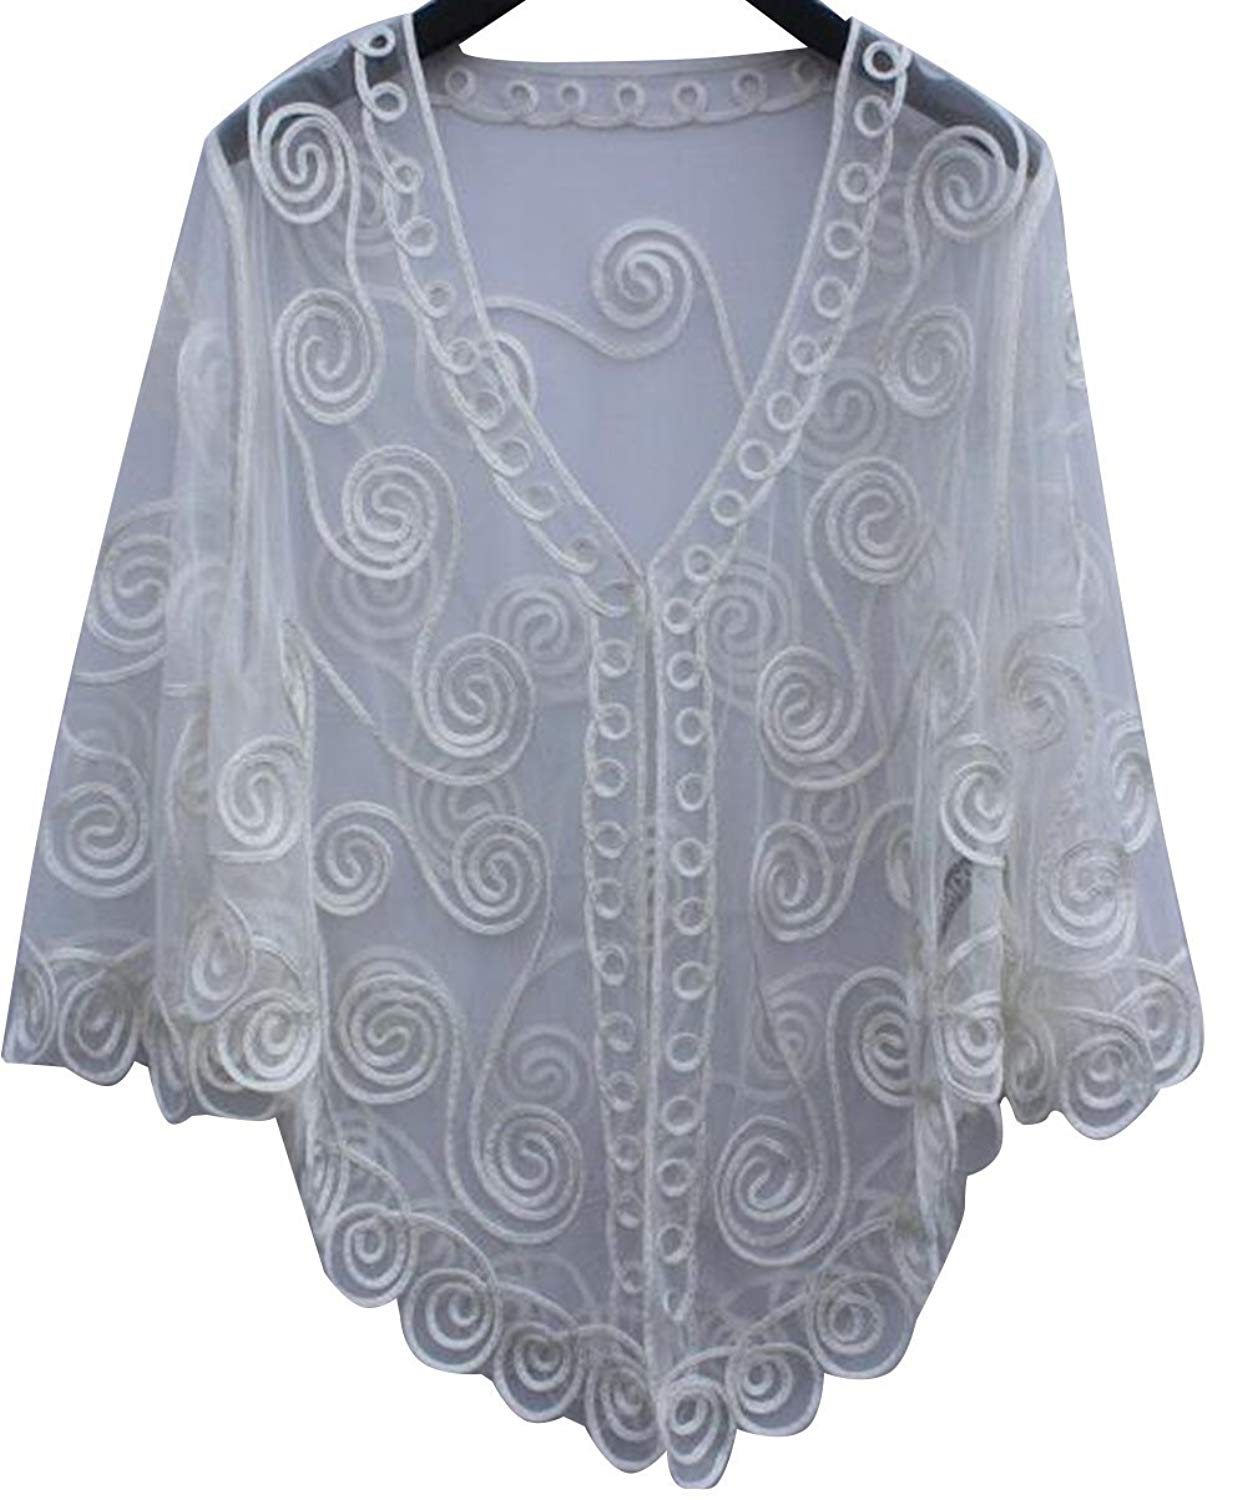 ed3ef1d2a85 Get Quotations · Summer Shawl Women Plus Size Loose Cardigan Bolero Shrug  Jacket Mesh Lace Sheer Bolero